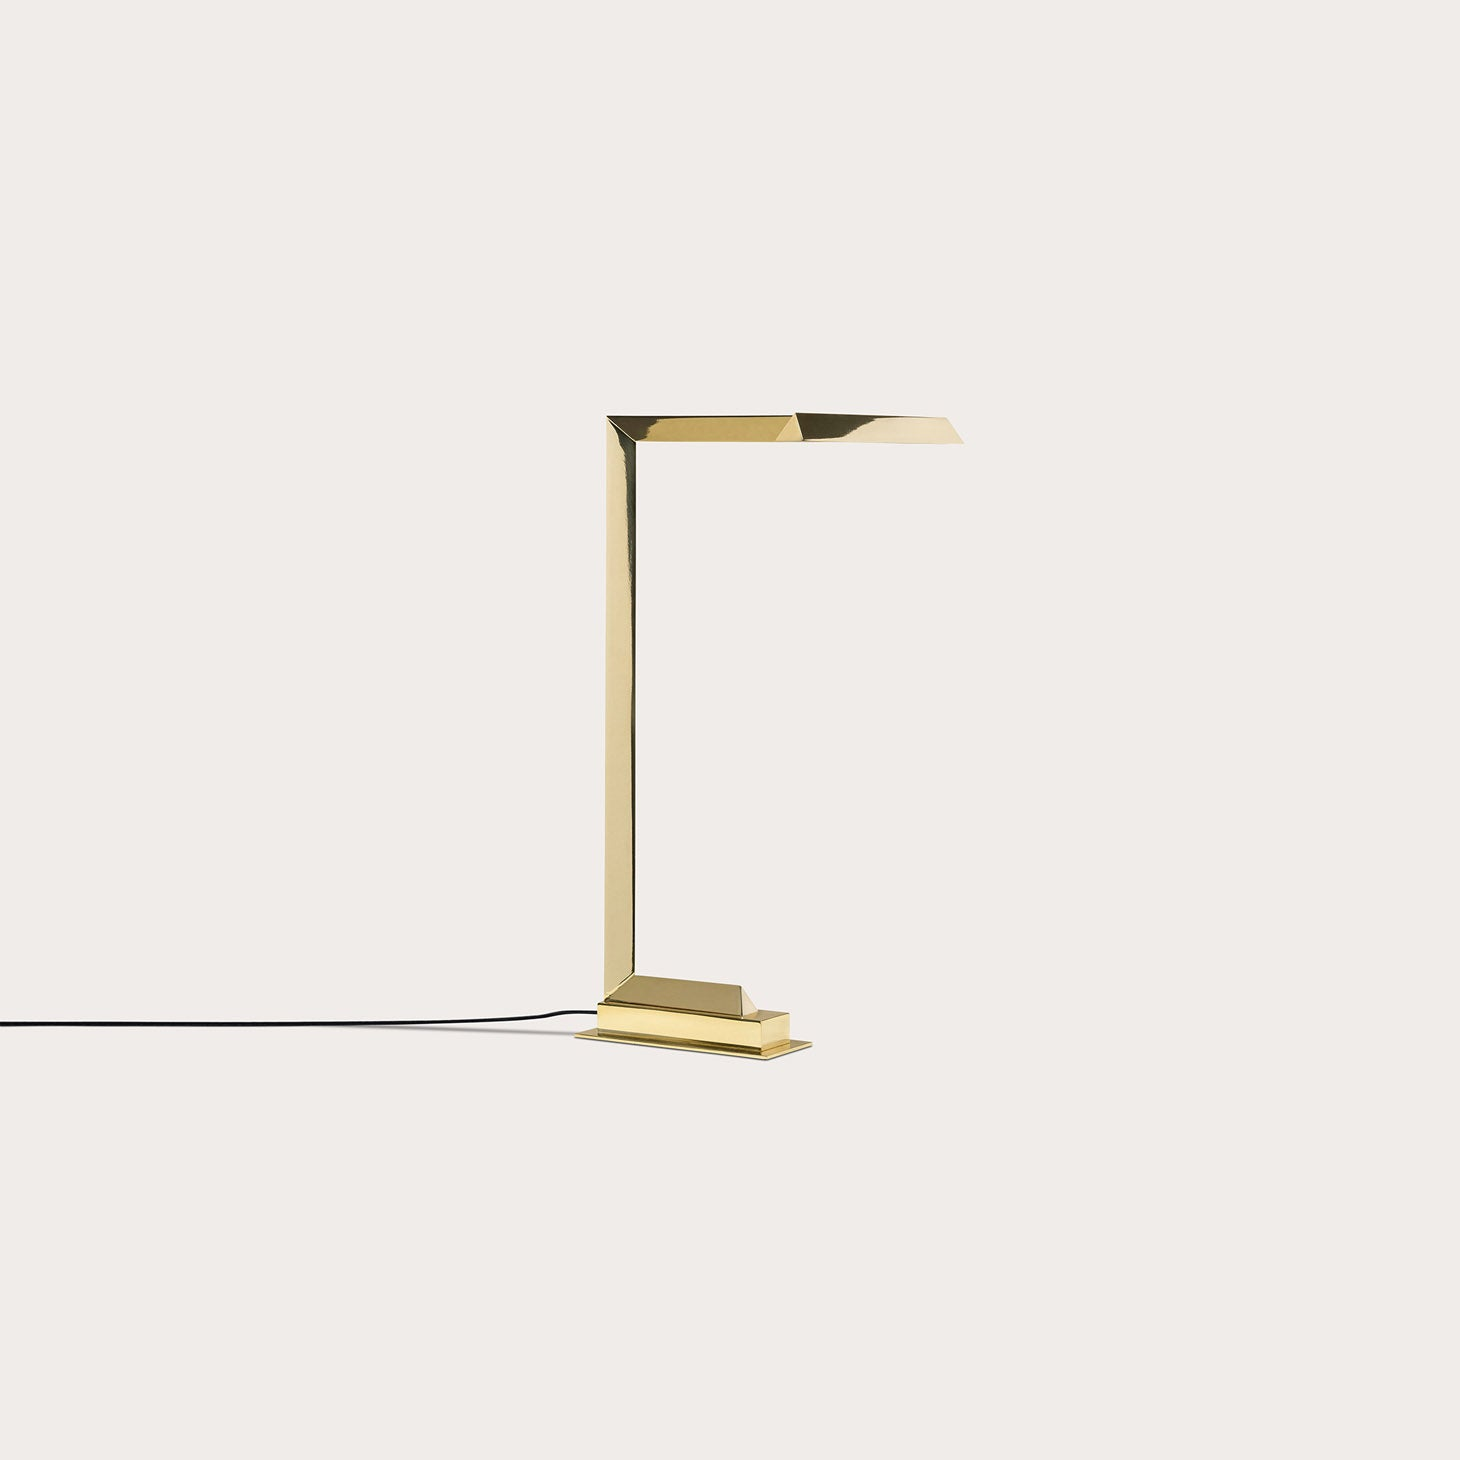 STYDD Lighting Bruno Moinard Designer Furniture Sku: 773-160-10011